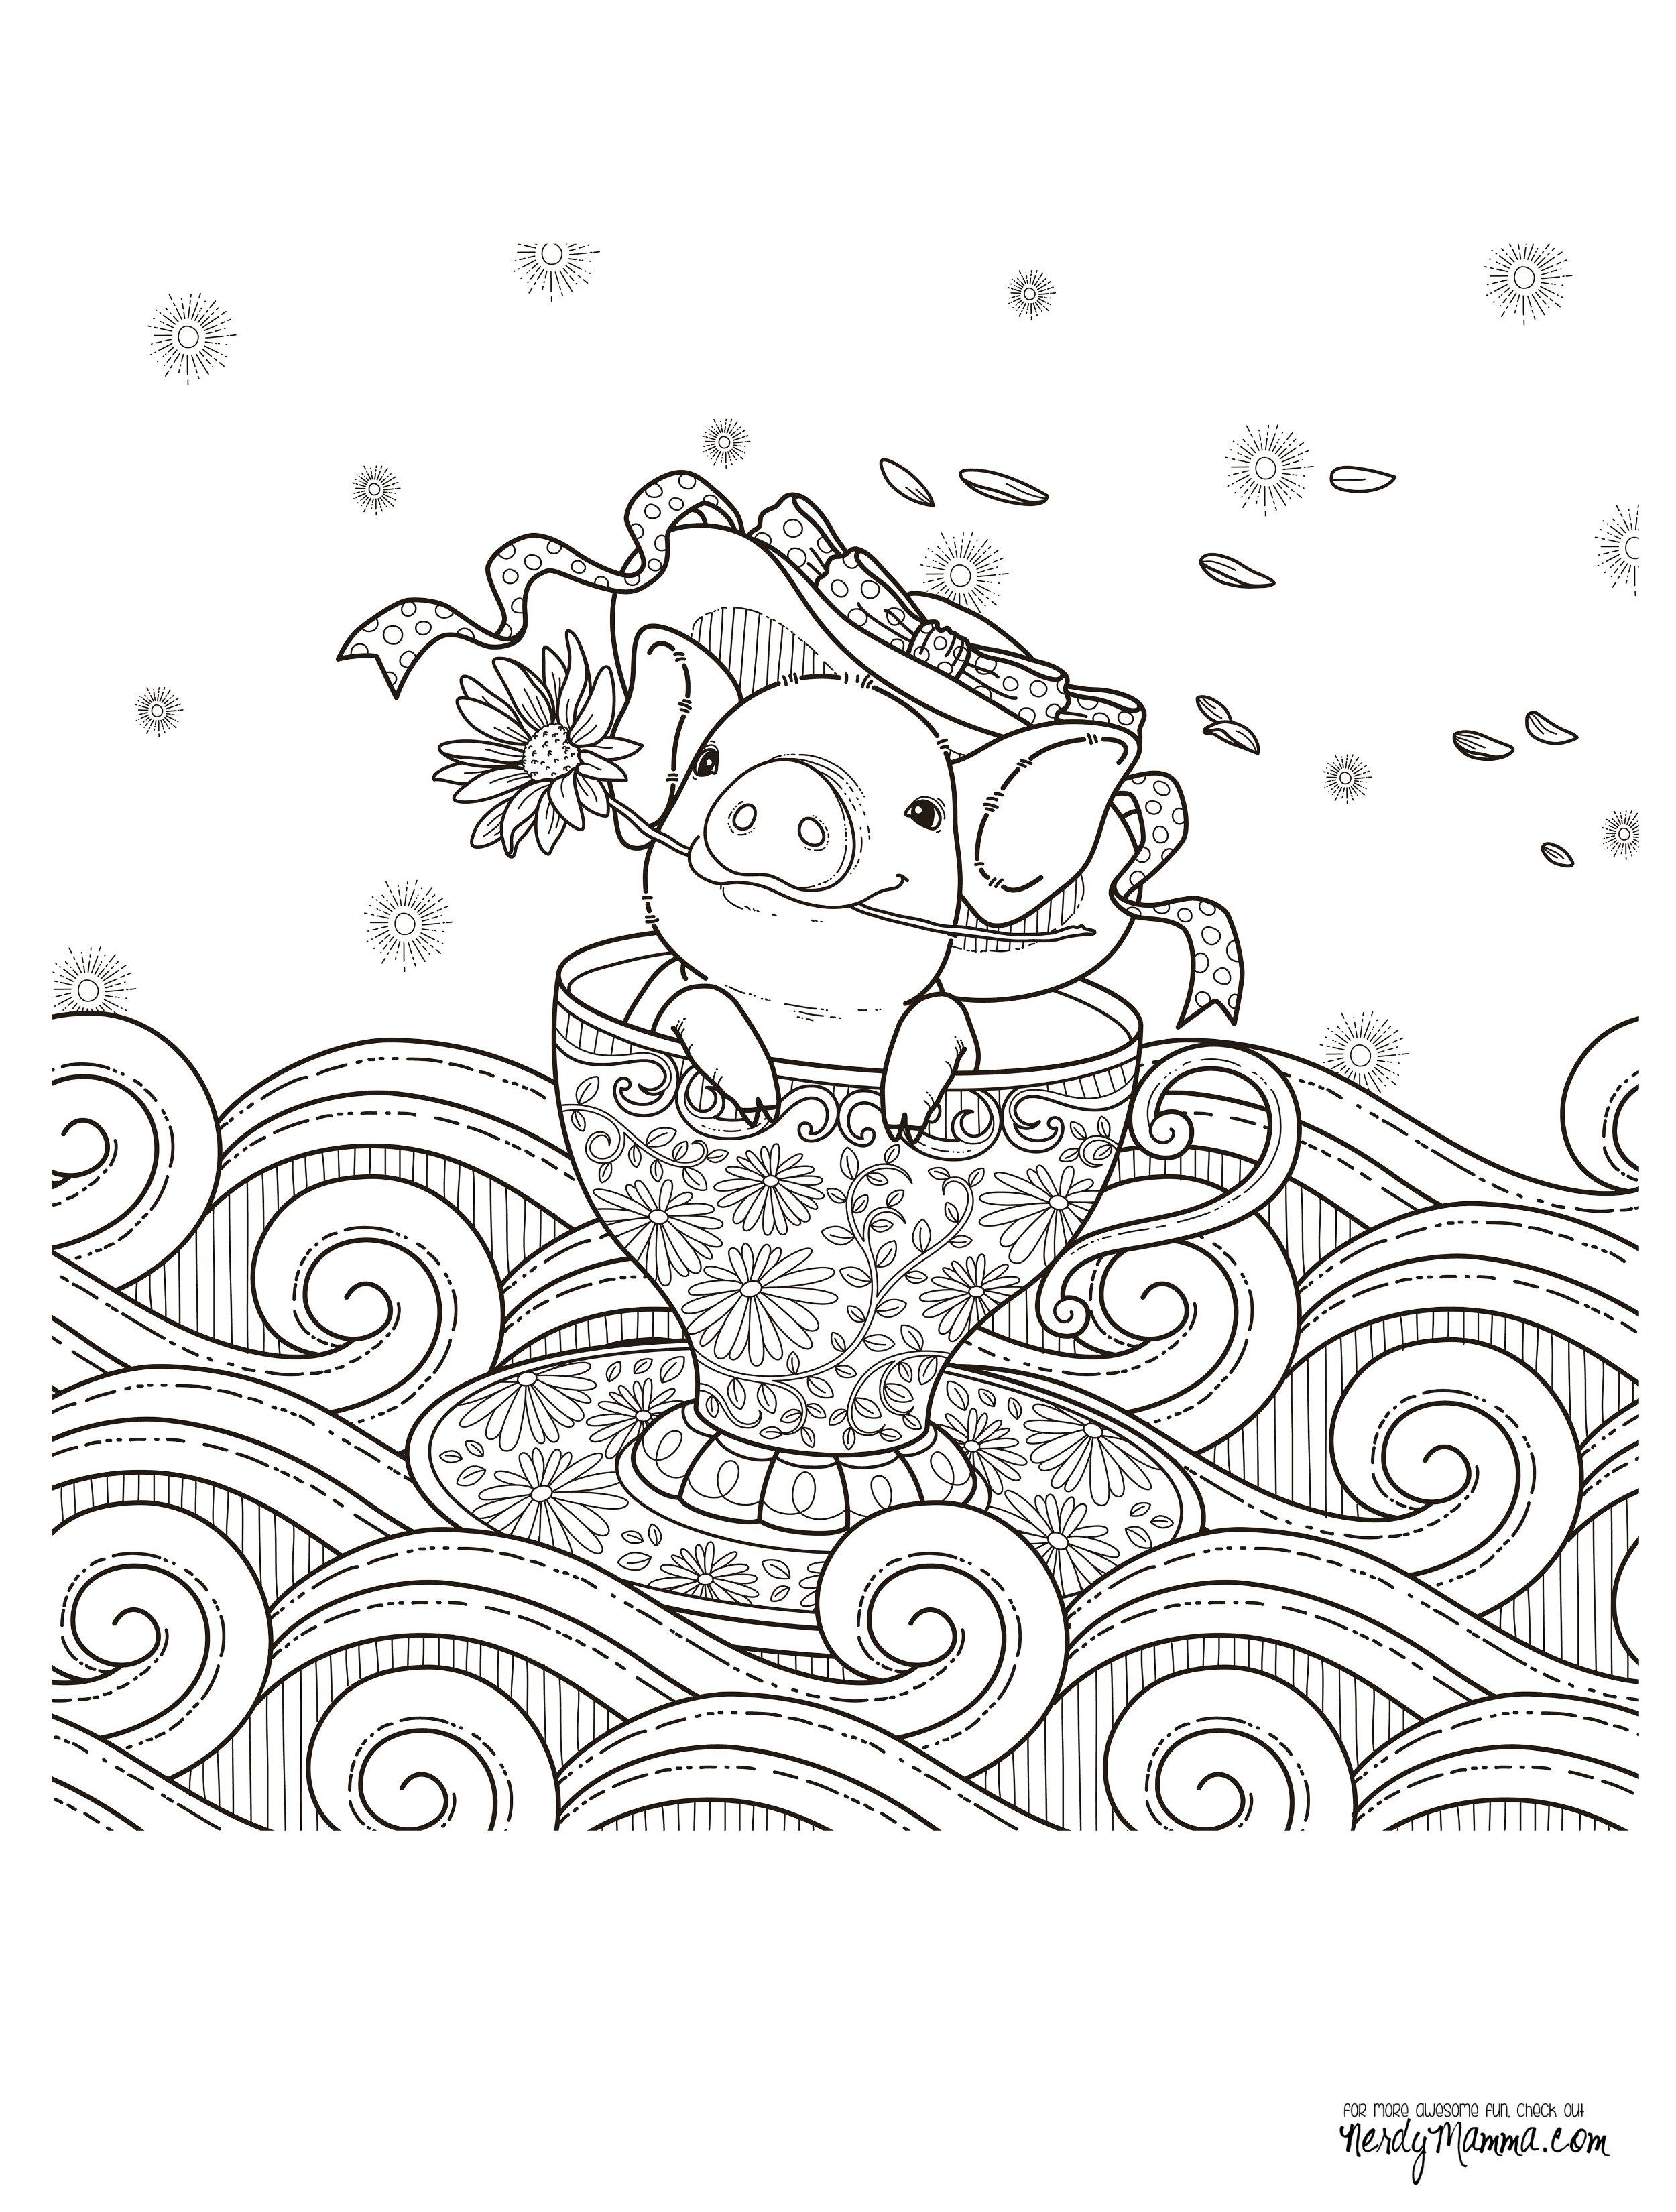 pig in a teacuop coloring page for adults kleuren voor volwassenen